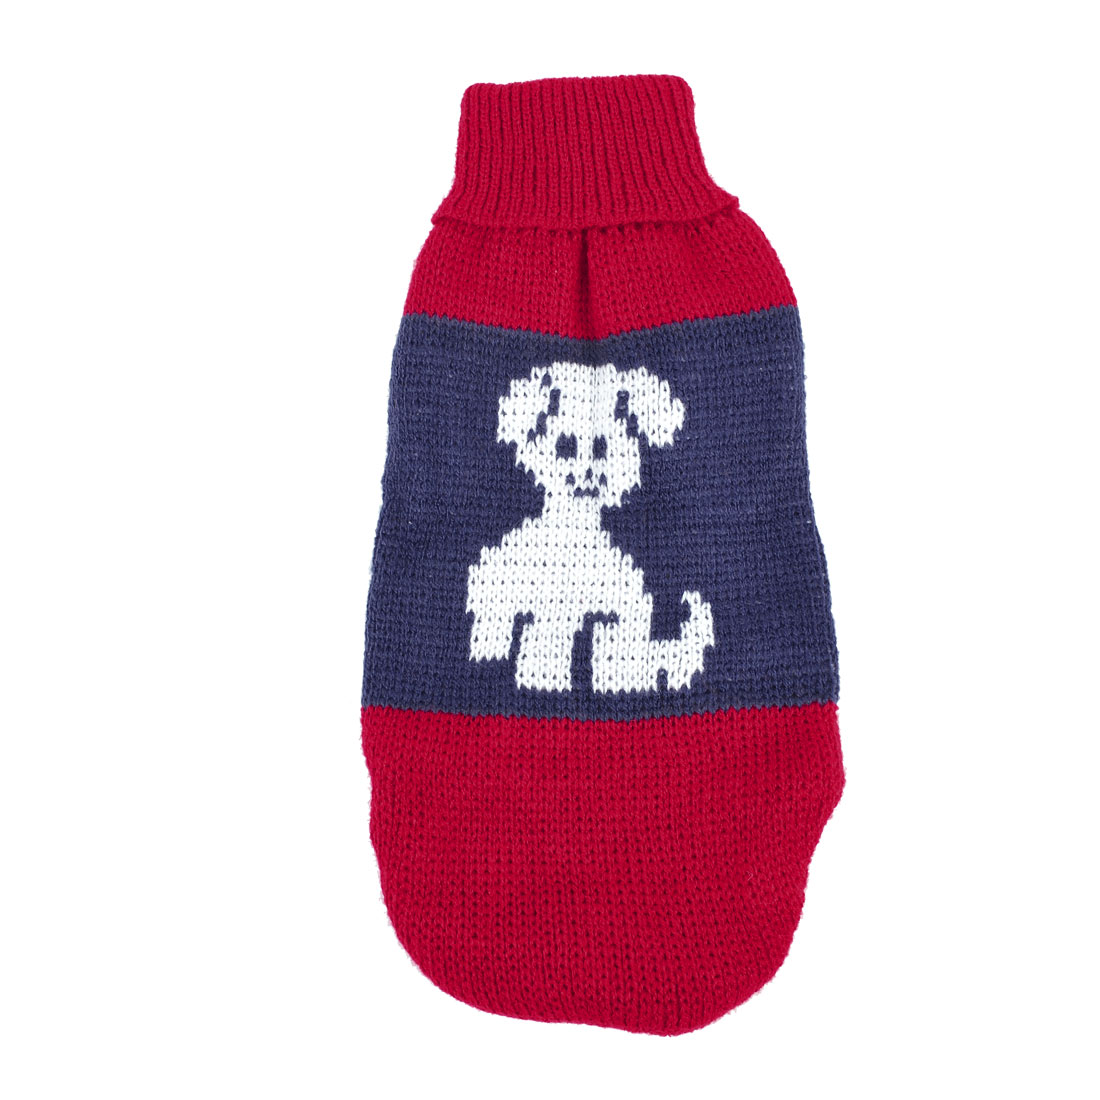 Winter Dog Pattern Knitted Coat Pet Yorkie Clothing Puppy Sweater Red Blue XS